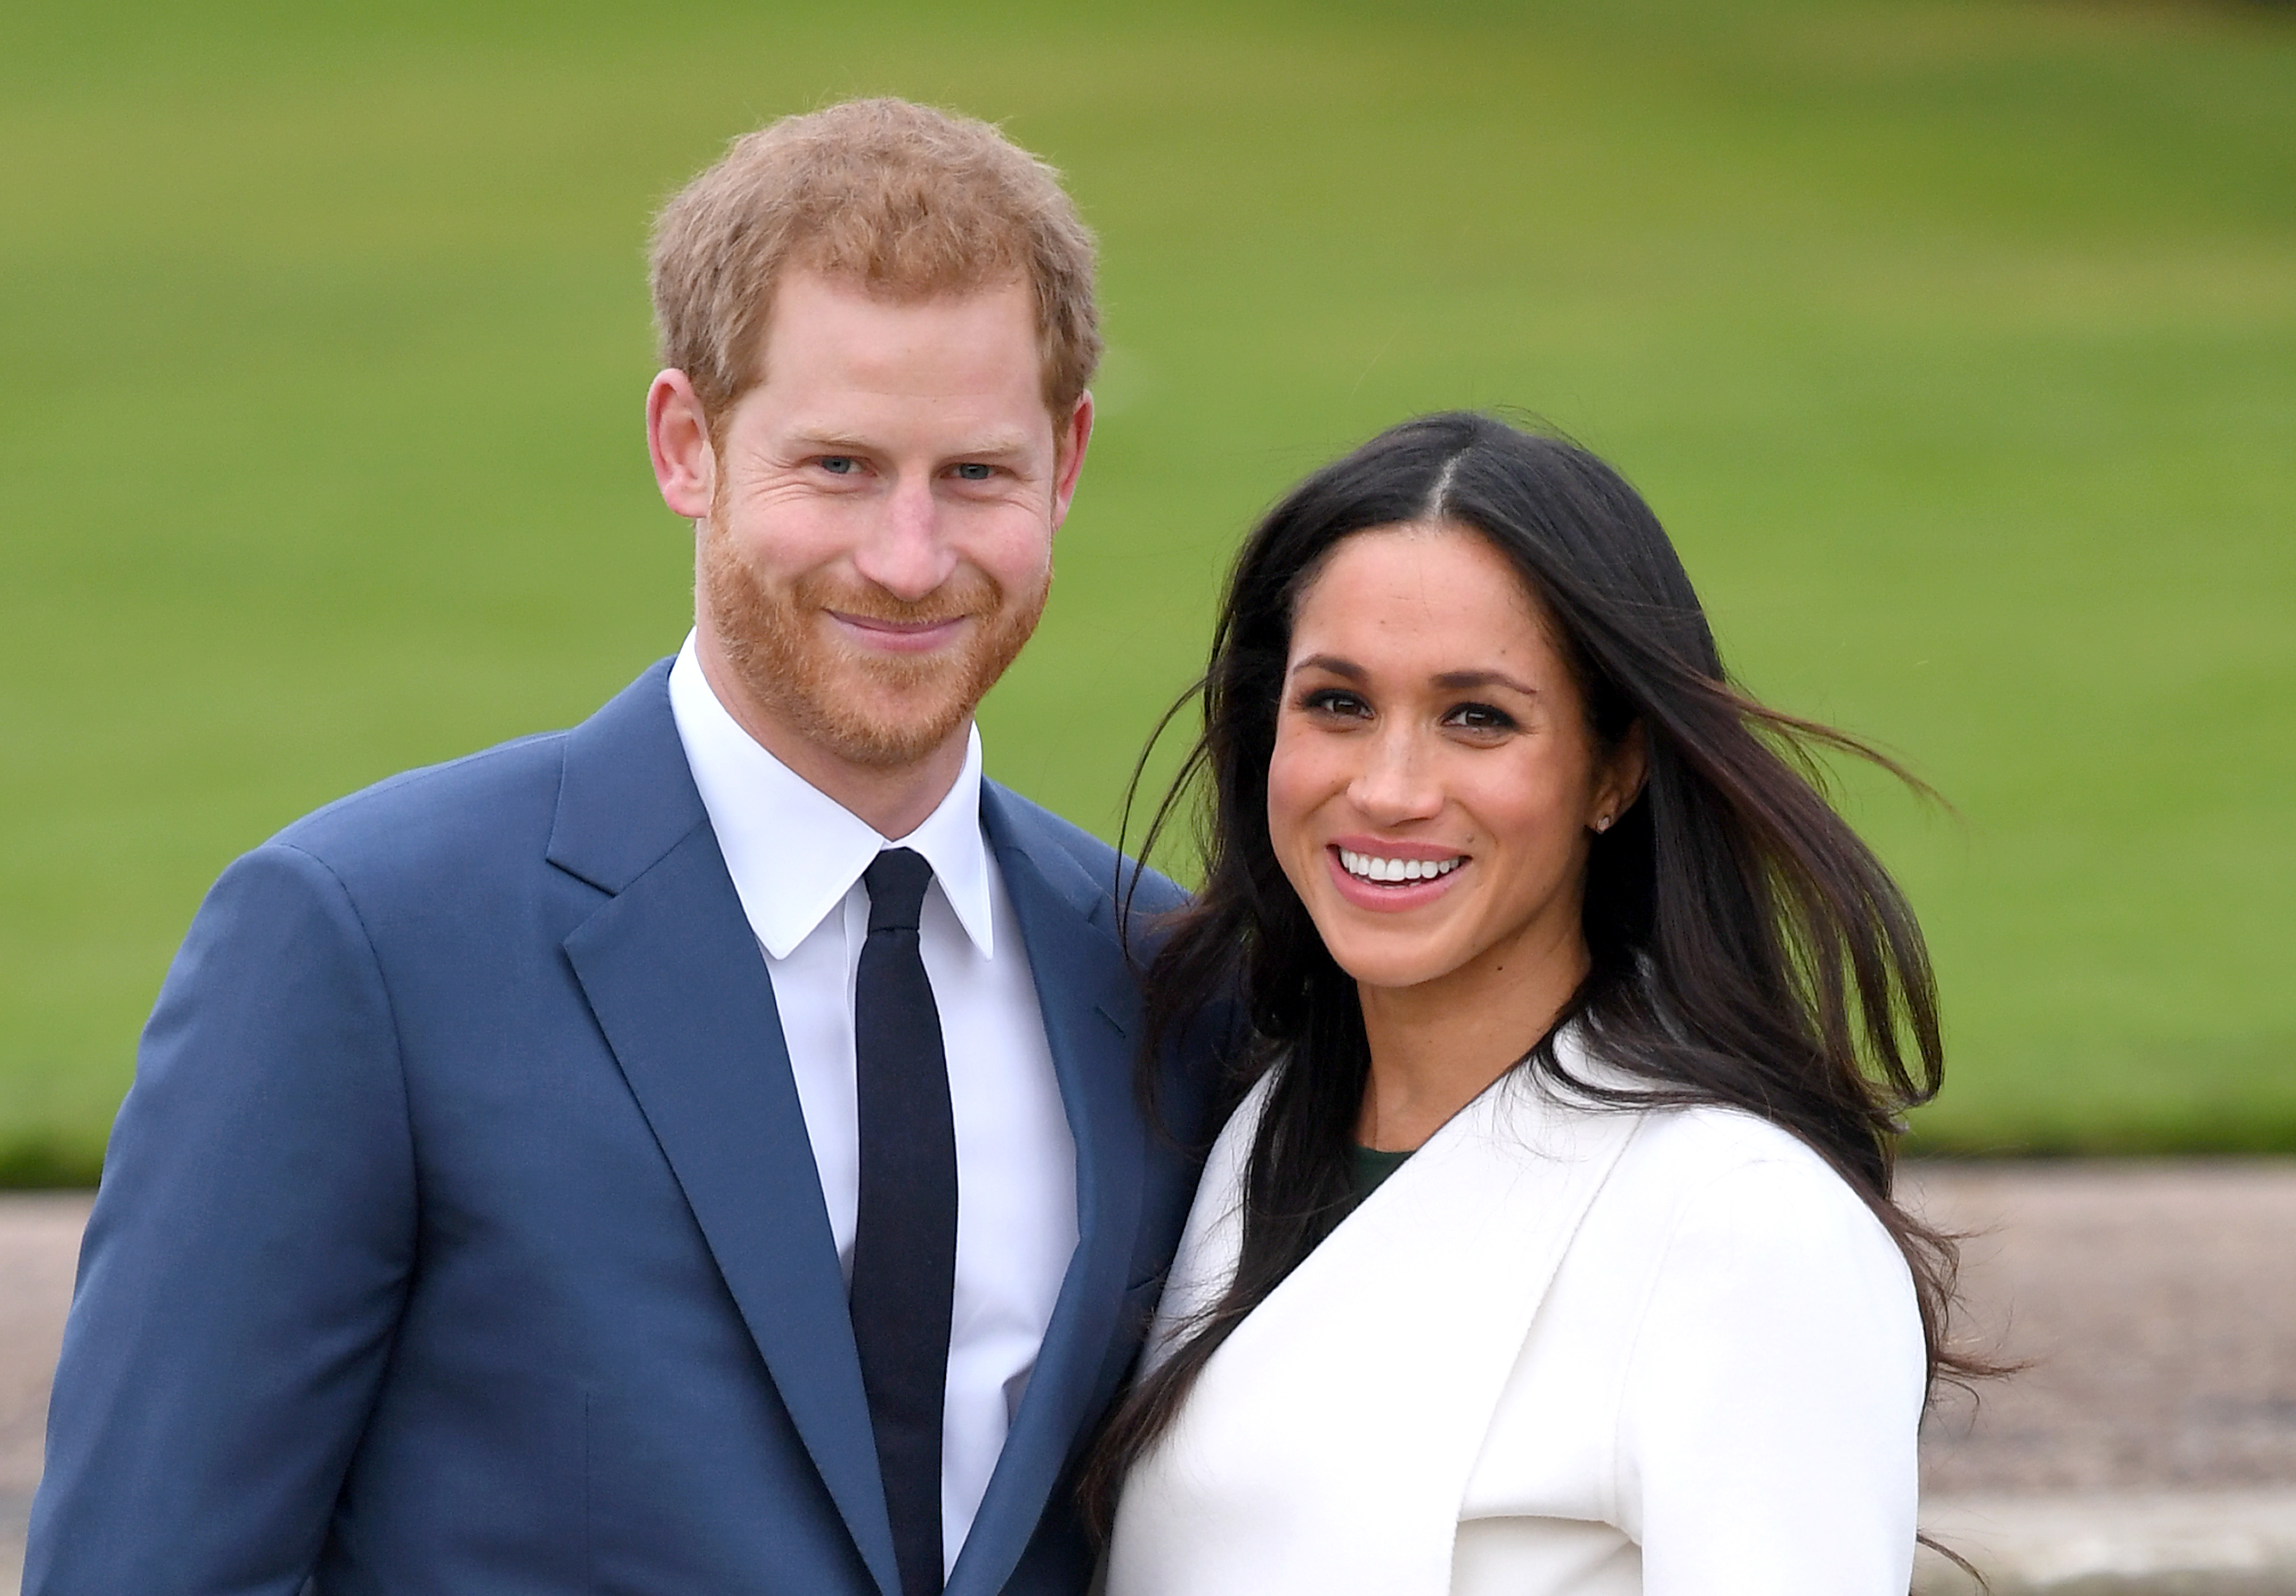 Prince Harry, Meghan Markle will no longer use royal titles, Queen and Buckingham Palace announce